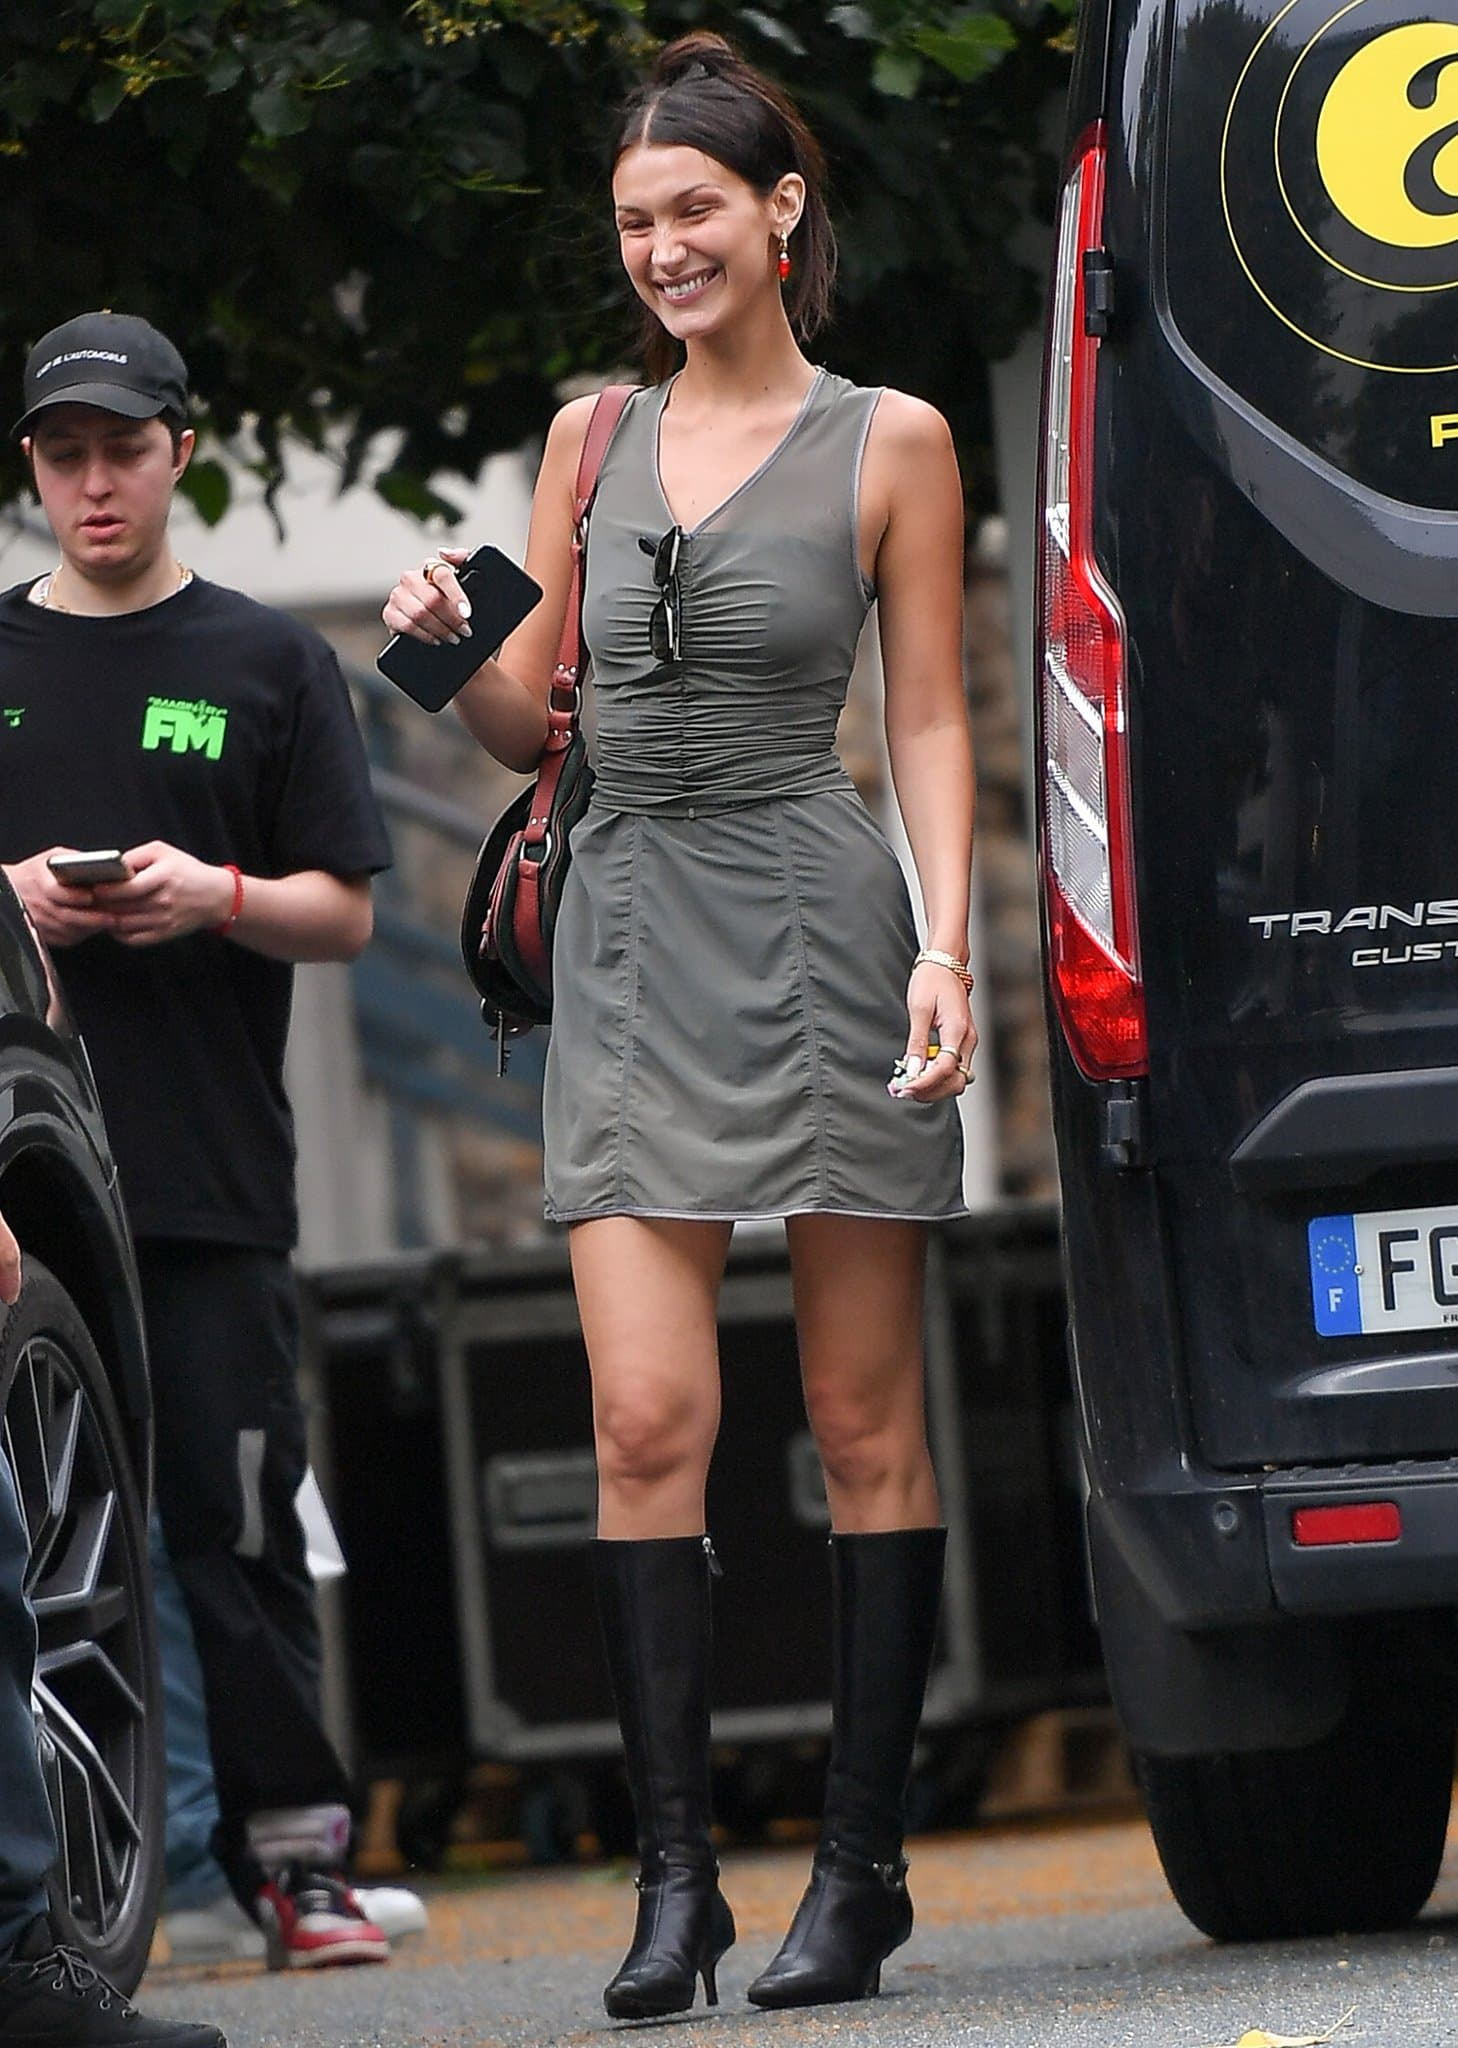 Bella Hadid leaving Off-White runway show during Paris Fashion Week in olive green mini dress and boots on July 4, 2021